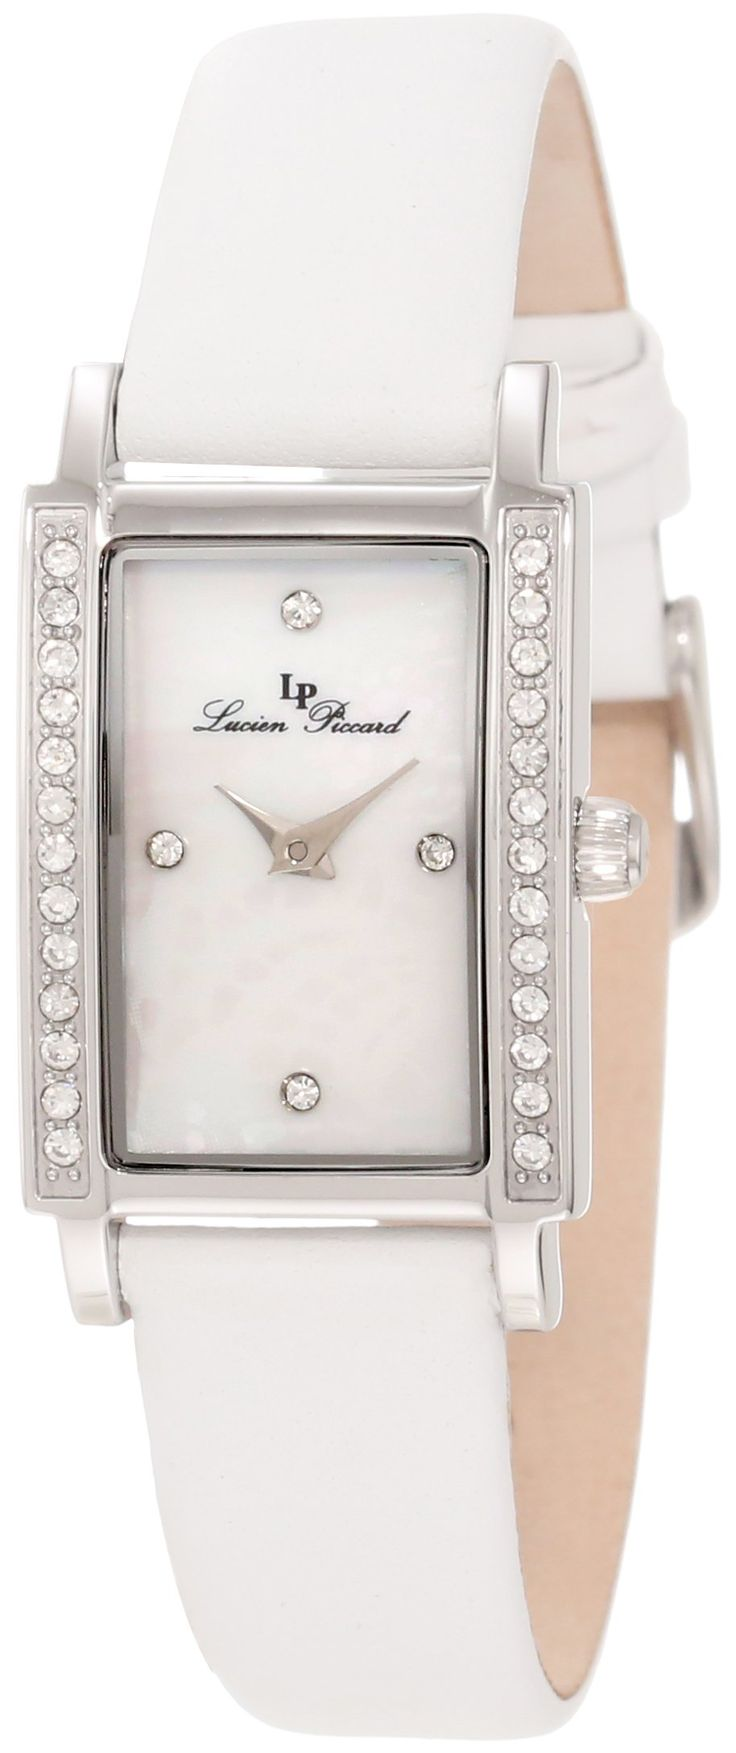 Lucien Piccard Women's 11673-02MOP Monte Baldo Crystal White Leather Watch